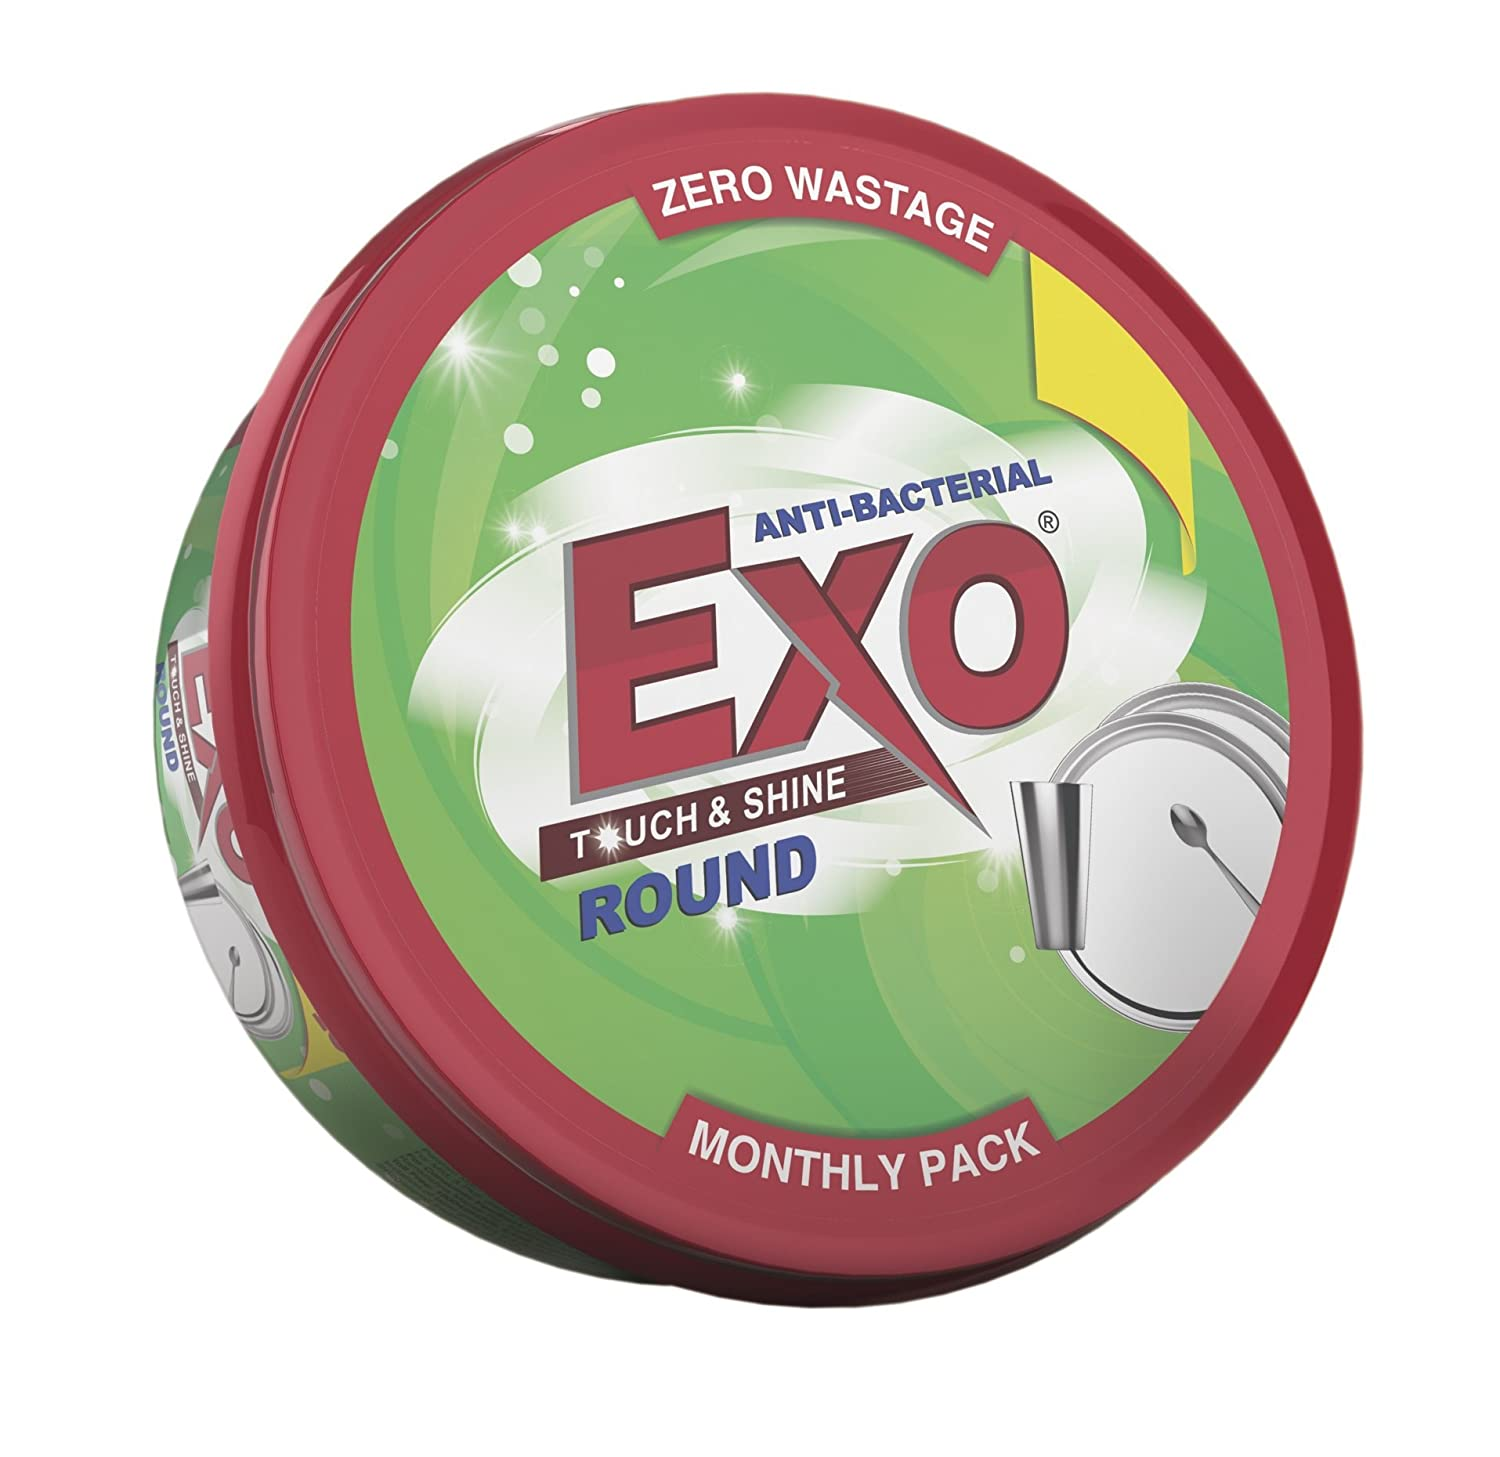 Exo Touch & Shine Anti-Bacterial Round Dishwash Bar.